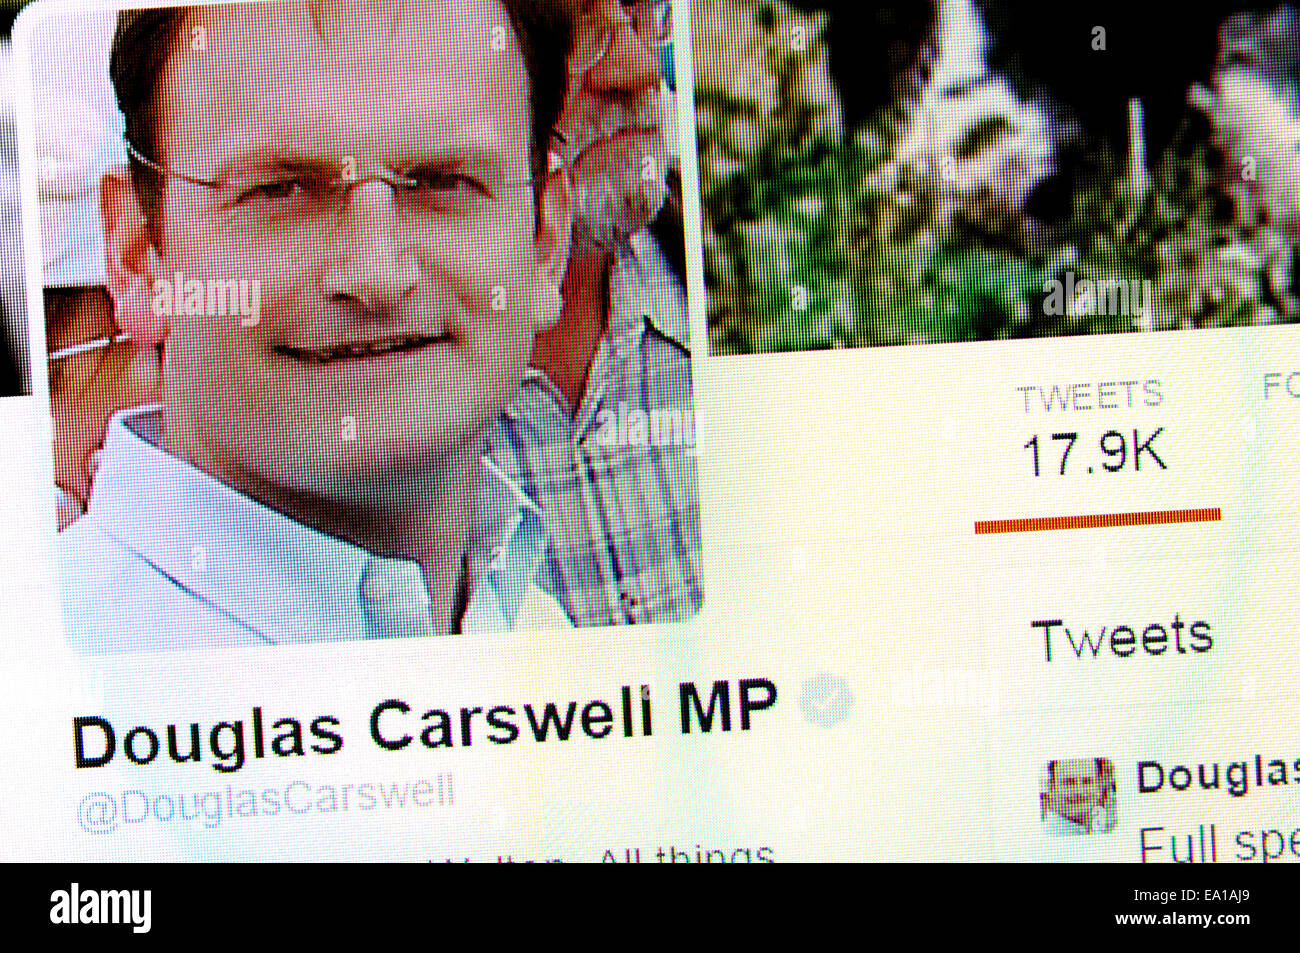 Douglas Carswell's Twitter account - screenshot of profile page - Stock Image